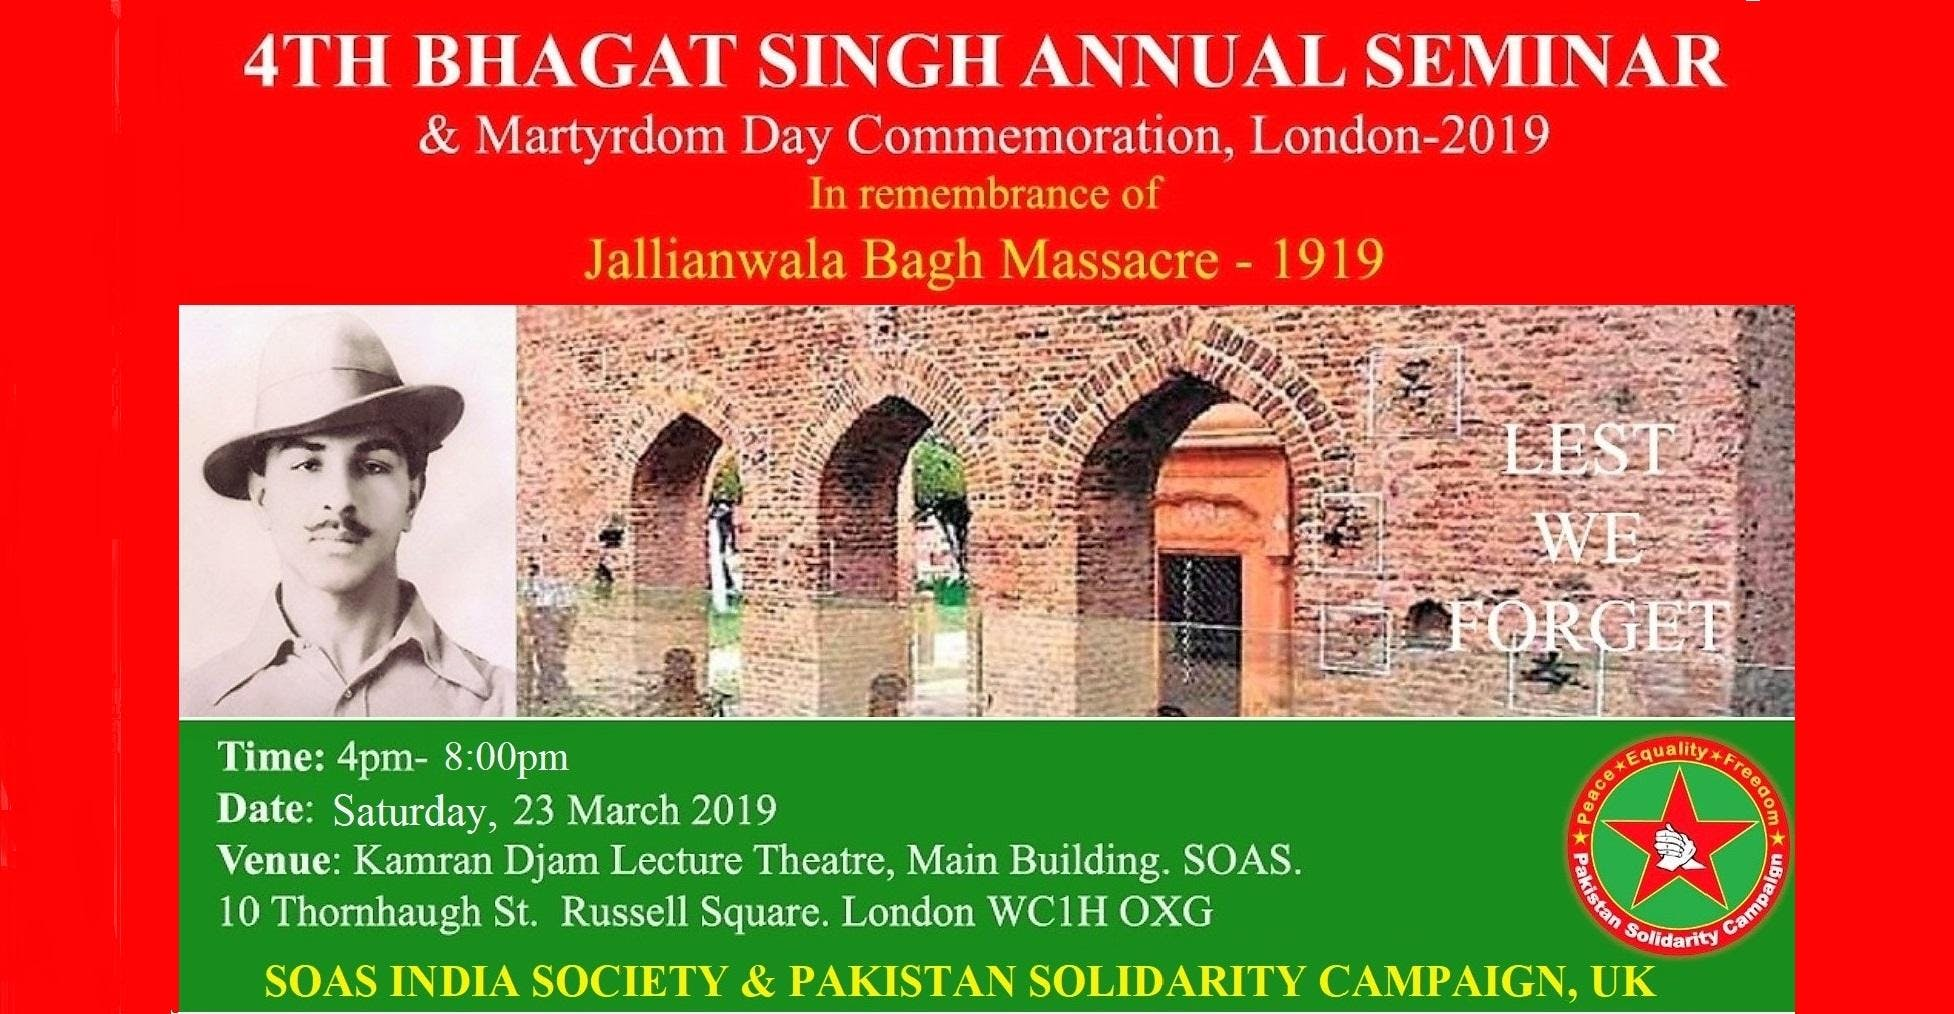 Fourth Bhagat Singh Annual Seminar: Remembering the 1919 Jallianwala Bagh Massacre